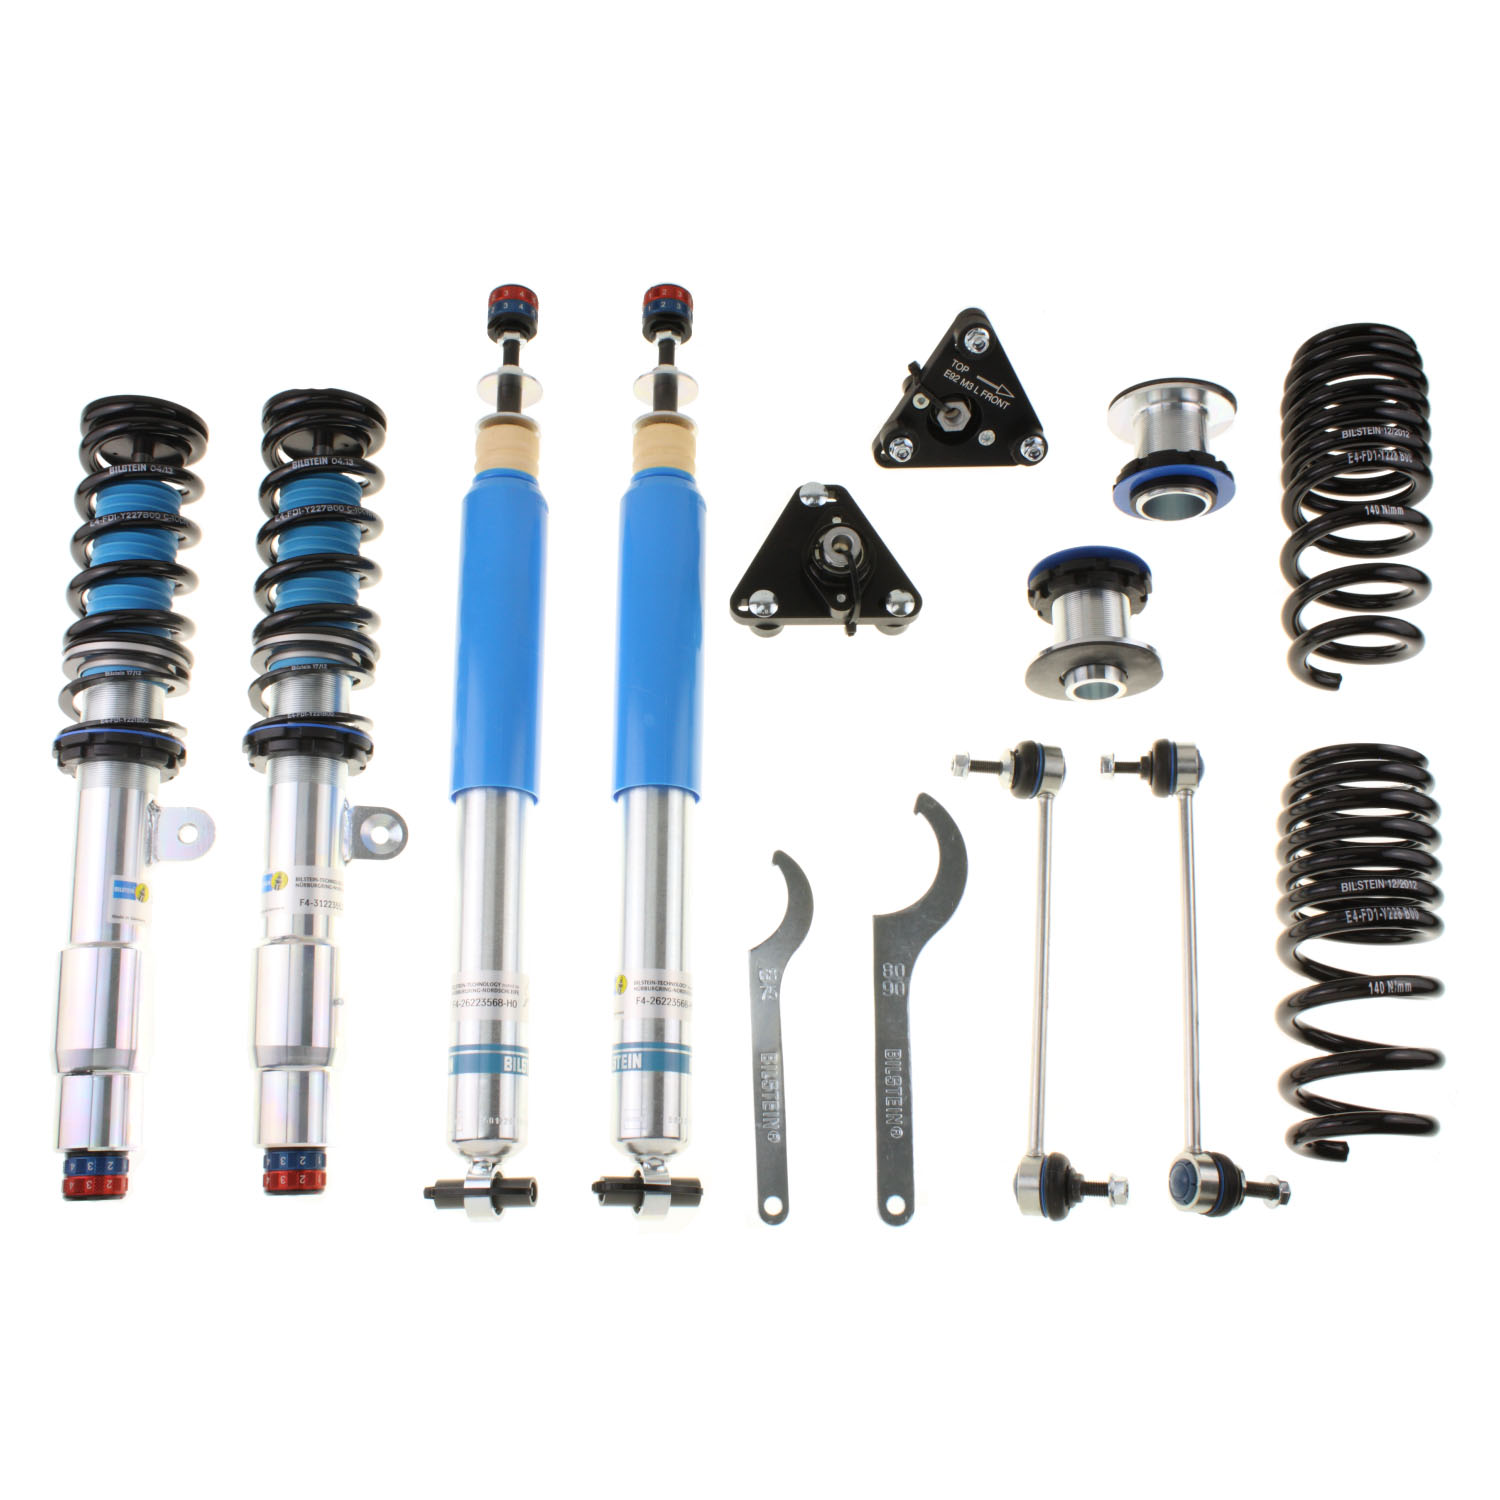 Bilstein Clubsport Coilover Suspension Kit For Bmw E92 M3